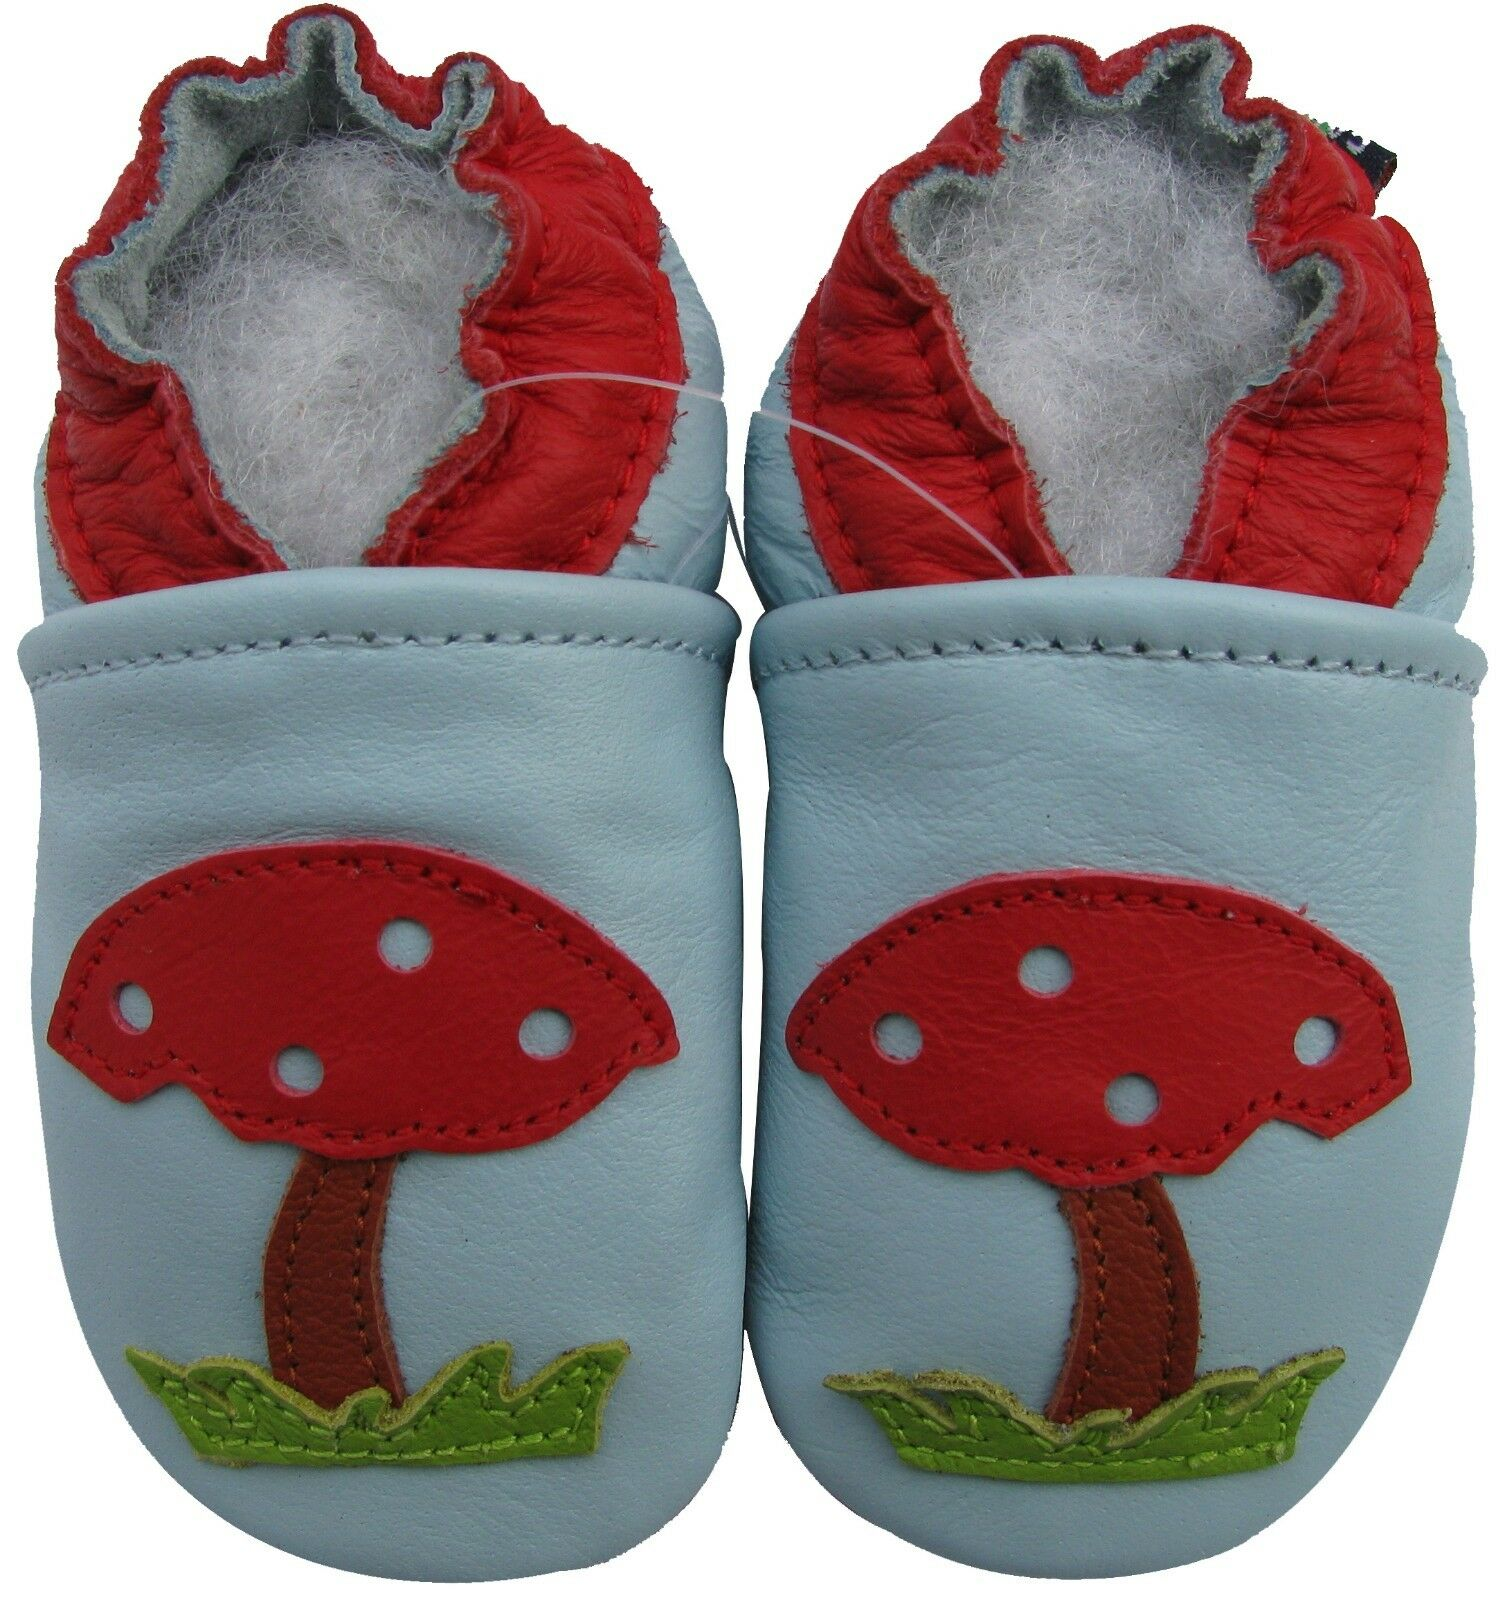 Carozoo Soft Sole Leather Baby Shoes Mushroom Light Blue 0 6m